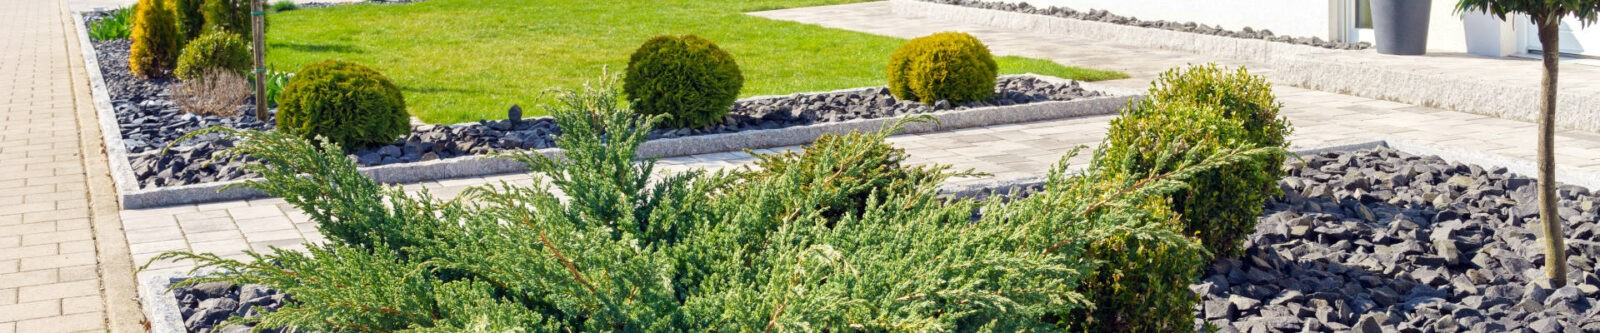 Landscaping and Gardening in Lancashire